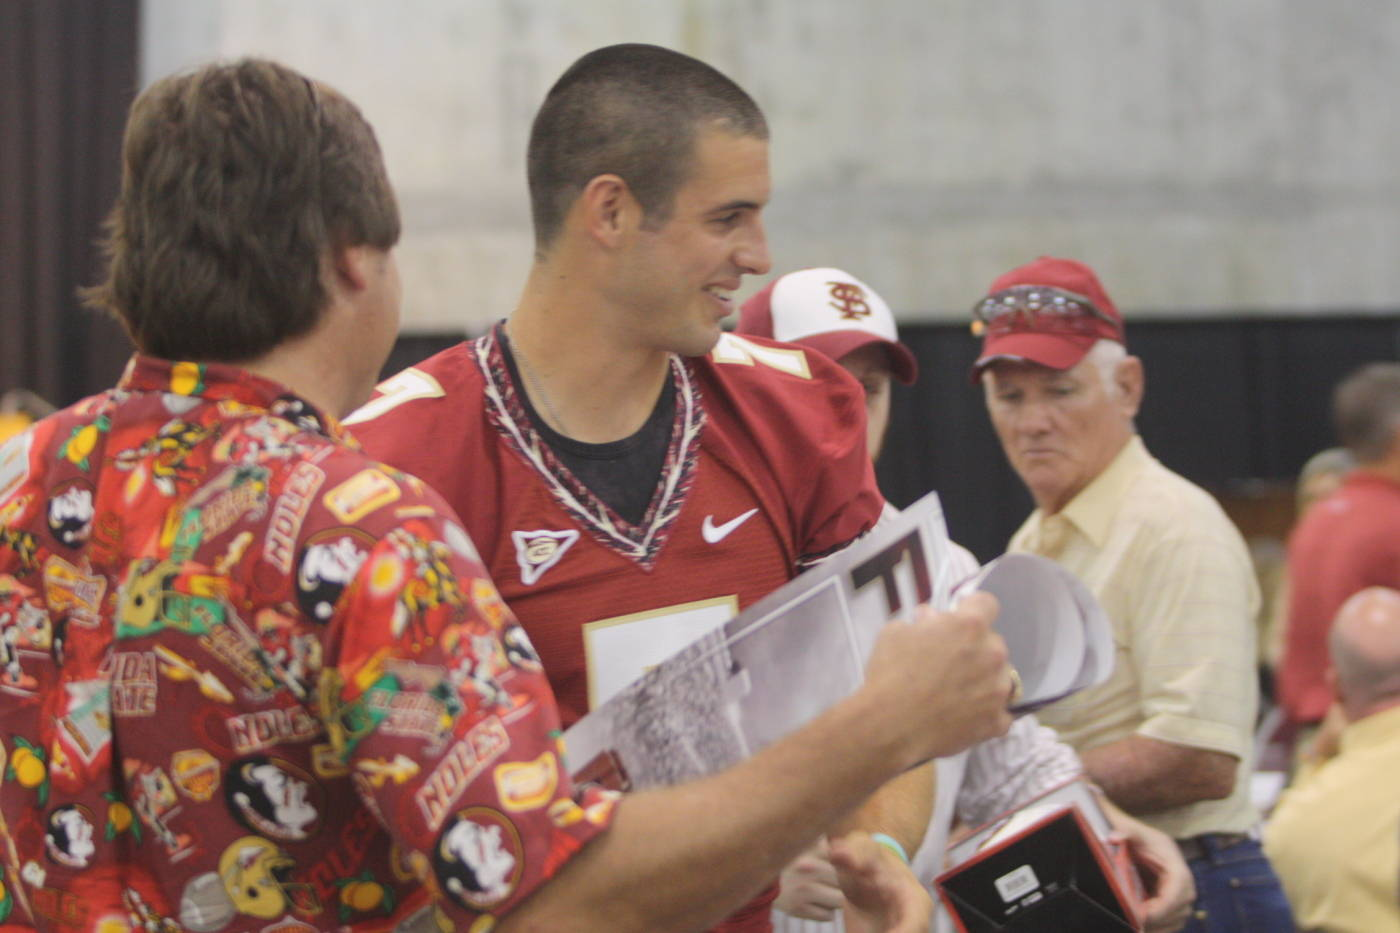 Christian Ponder meeting with fans at the 2009 Football Luncheon.